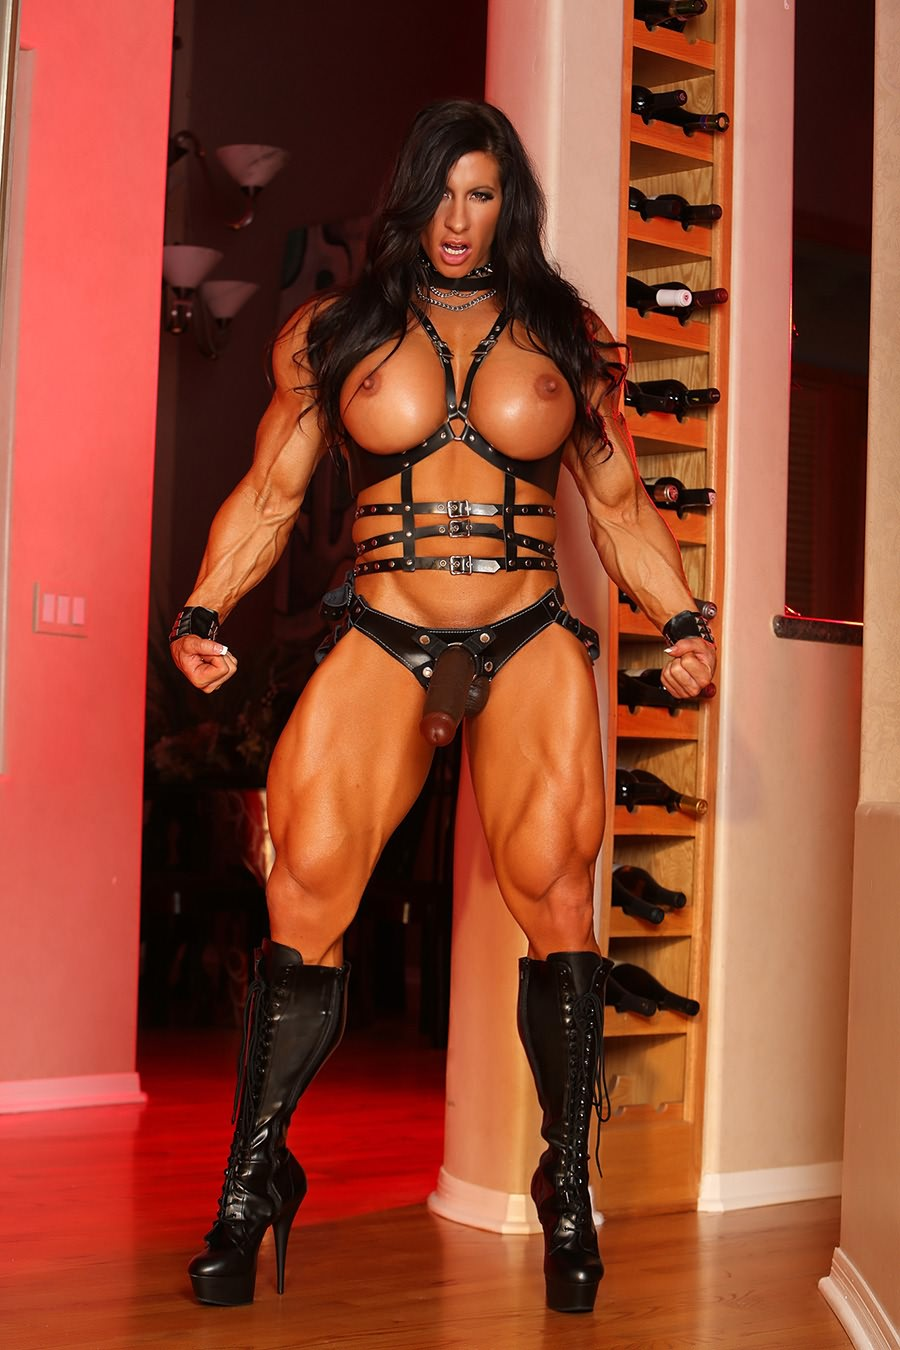 Female muscle domina think, that